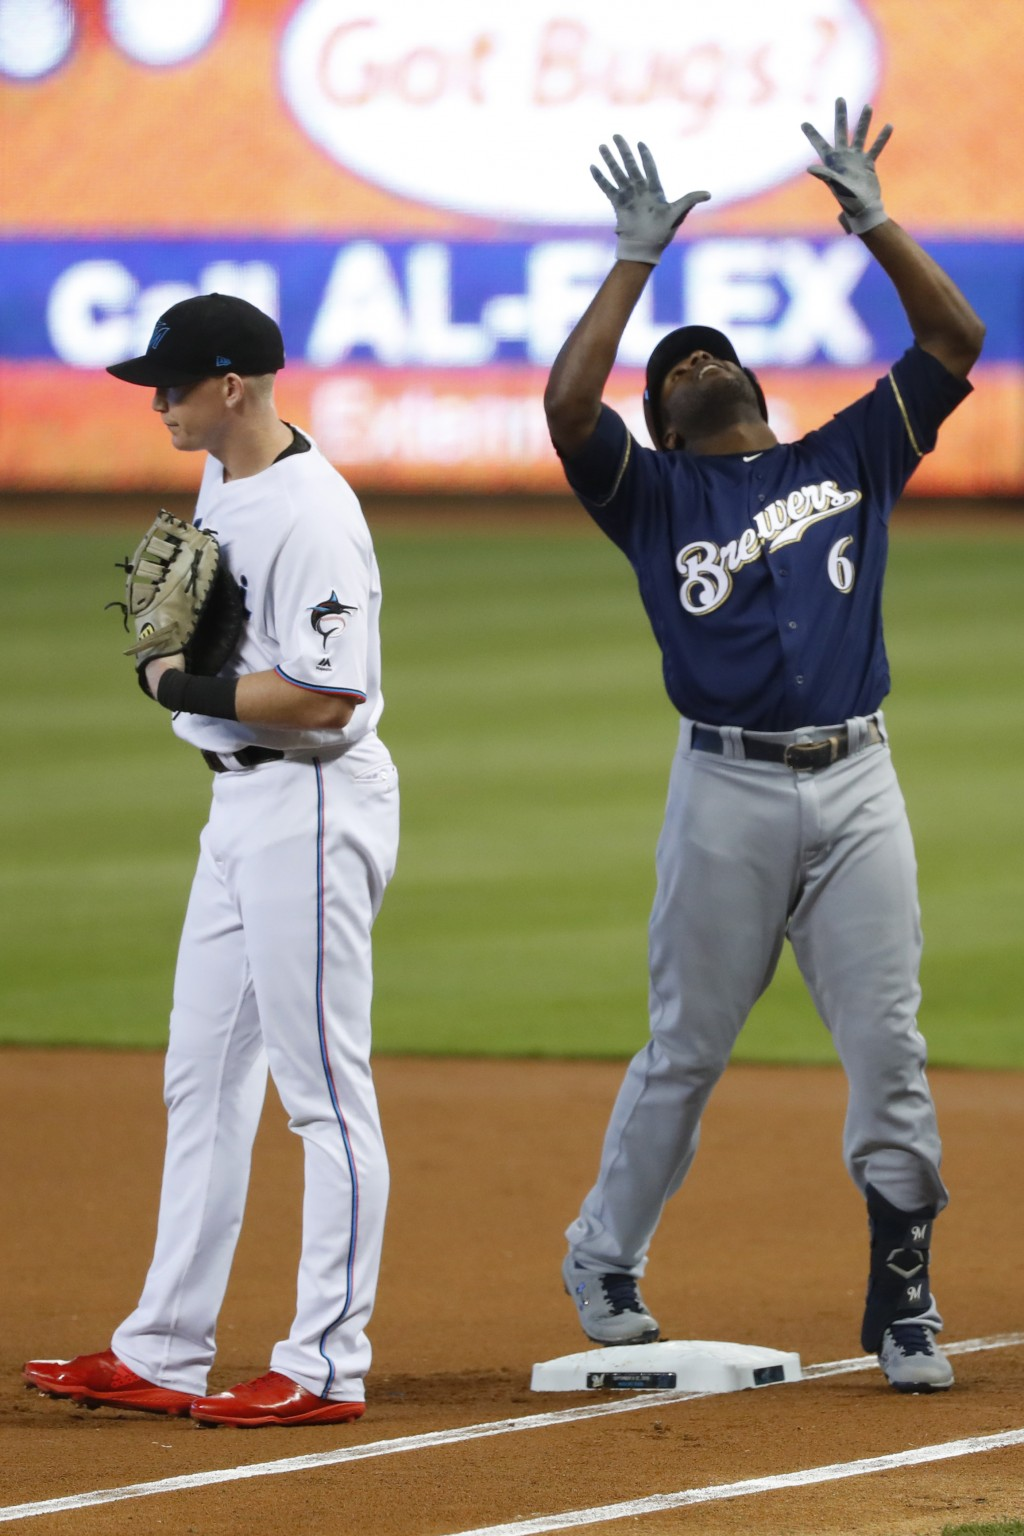 Milwaukee Brewers' Lorenzo Cain (6) celebrates a base hit next to Miami Marlins right fielder Garrett Cooper during the first inning of a baseball gam...